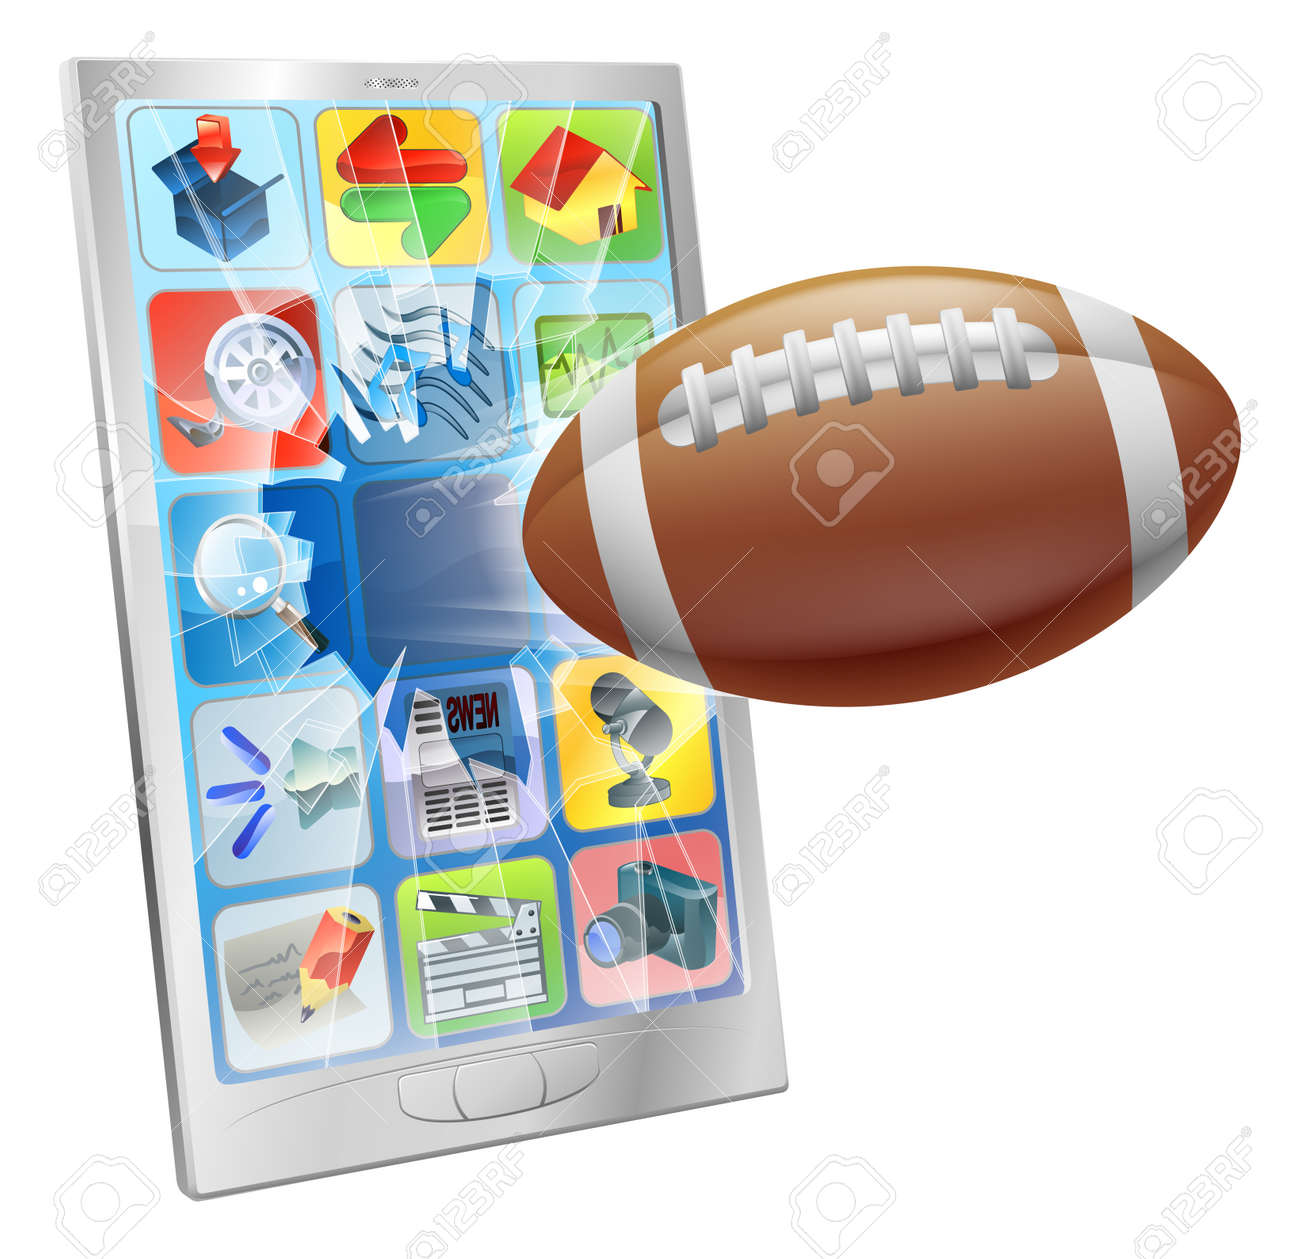 Illustration of an American football ball flying out of mobile phone screen Stock Vector - 15656889